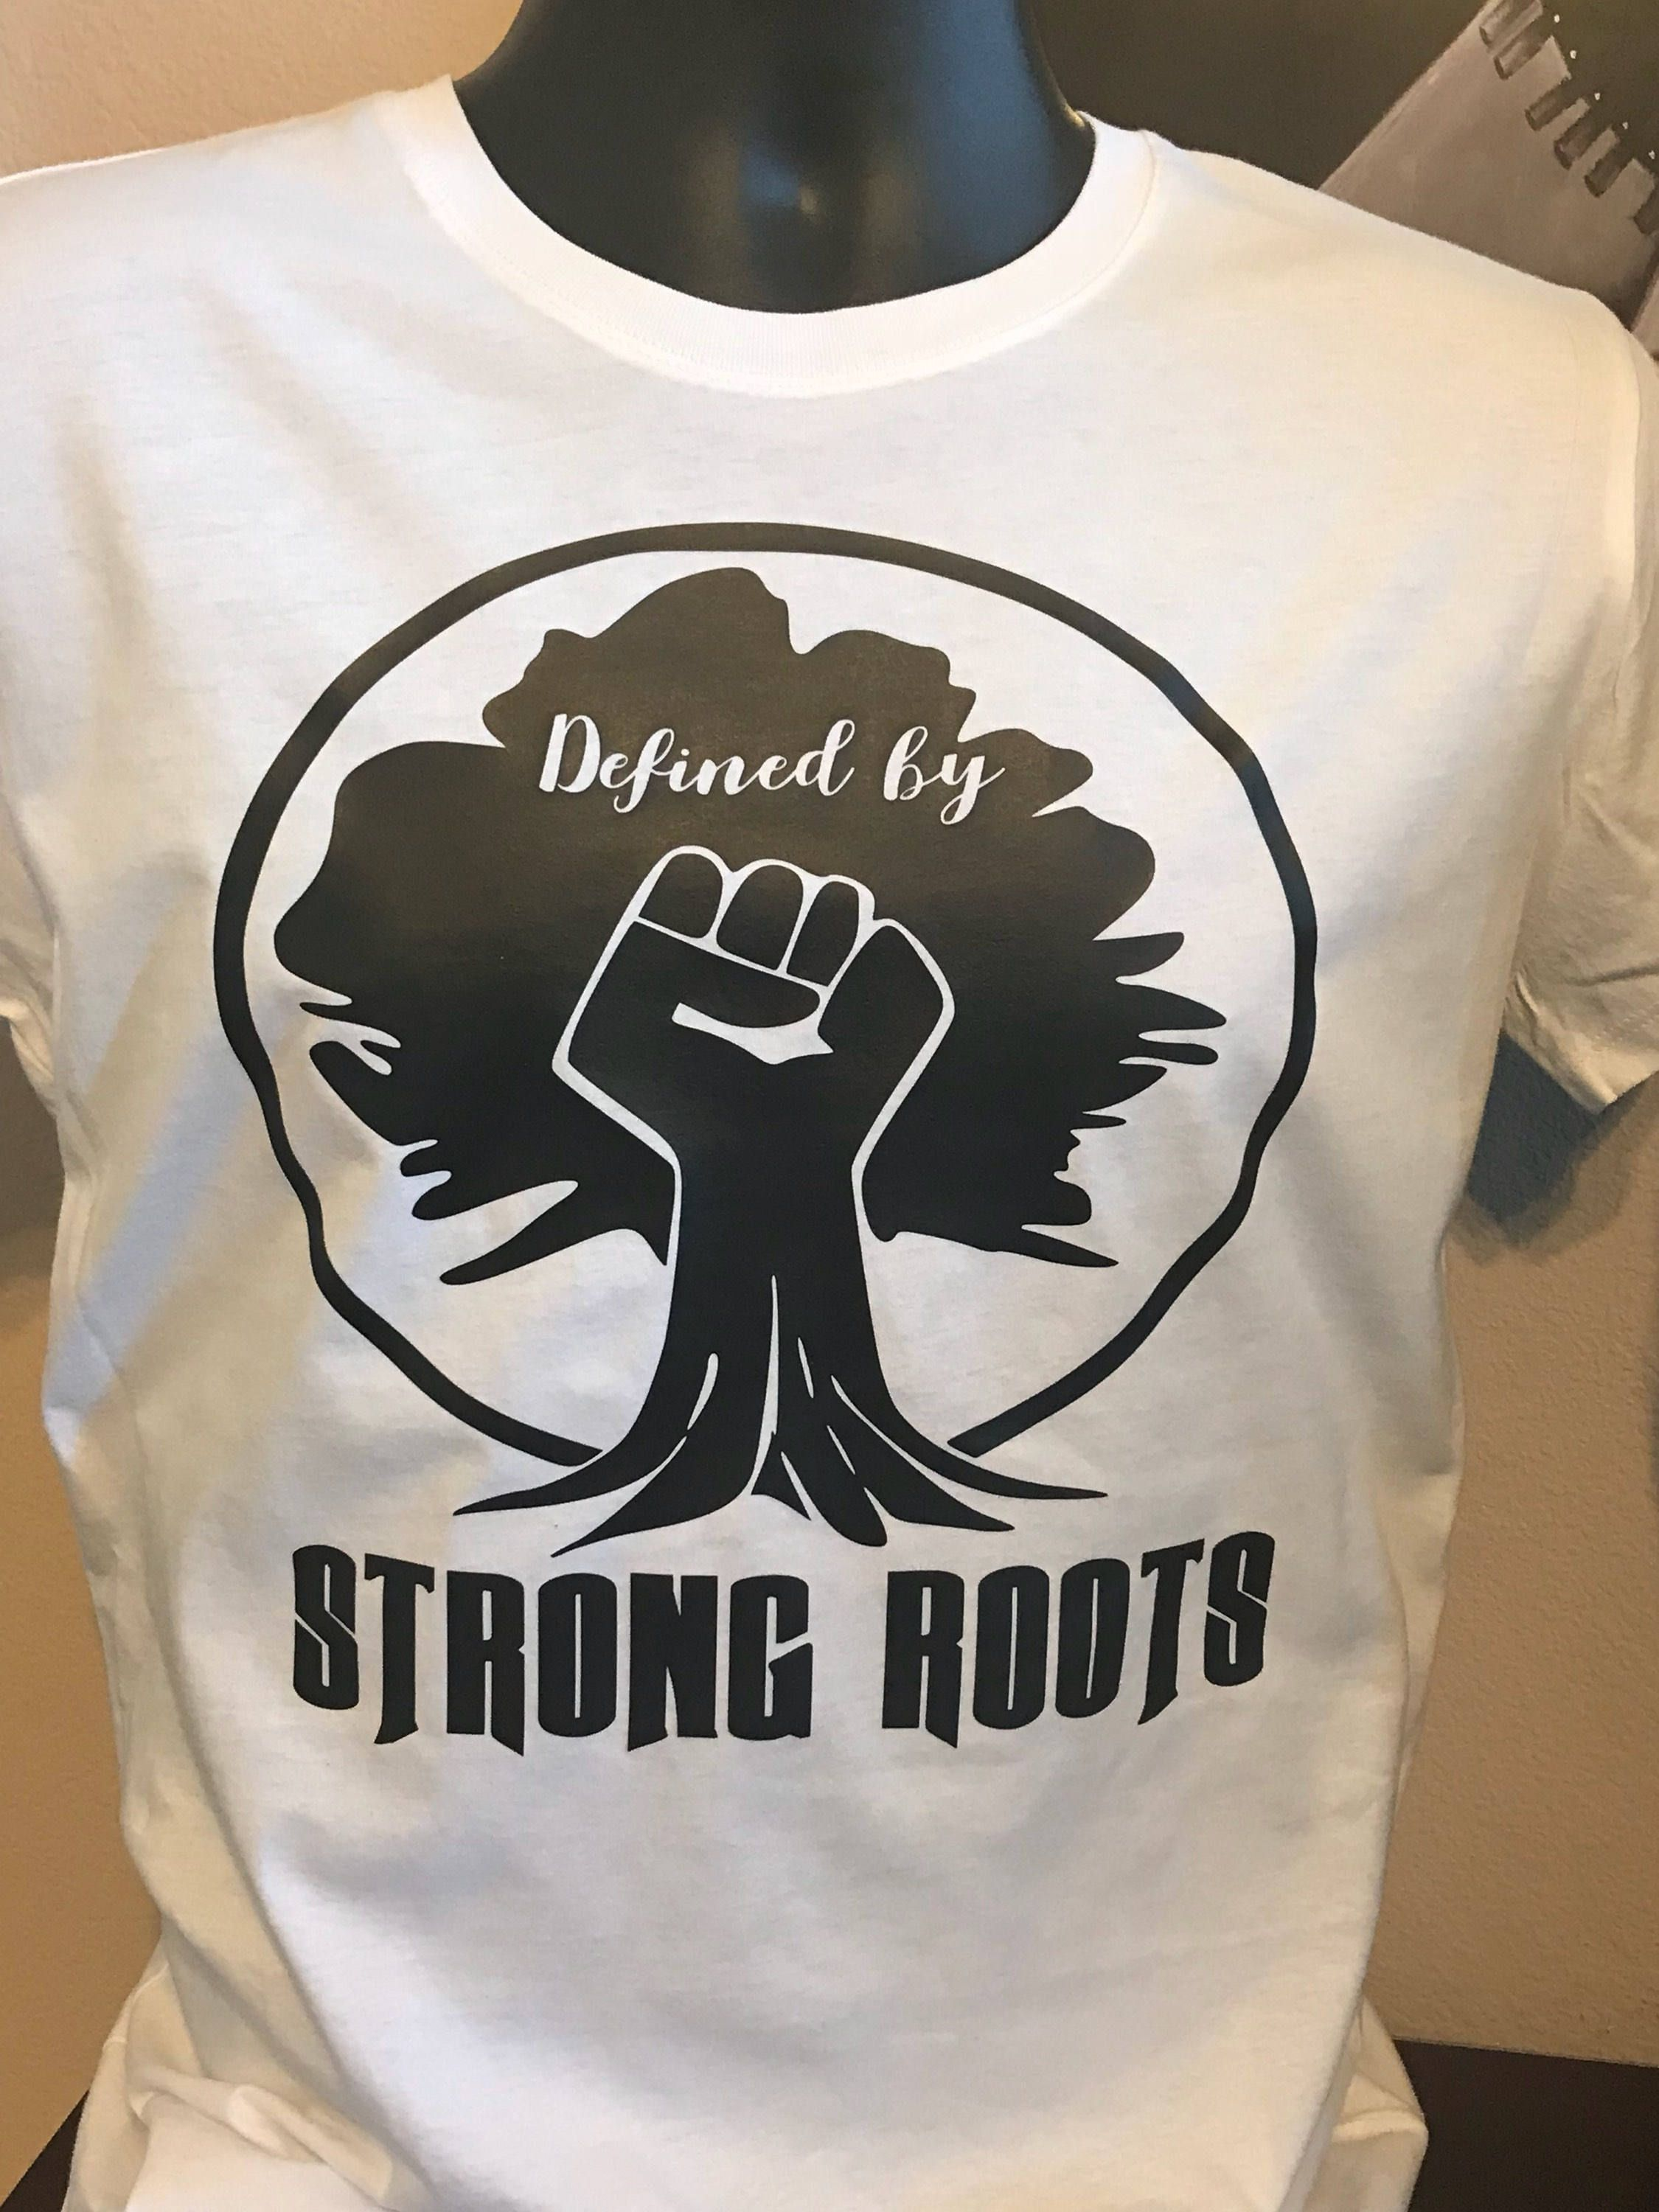 online store ba453 ff607 Unisex Defined By Strong Roots Black History  Family Reunion Heritage T- Shirts by EnviuDesigns on Etsy